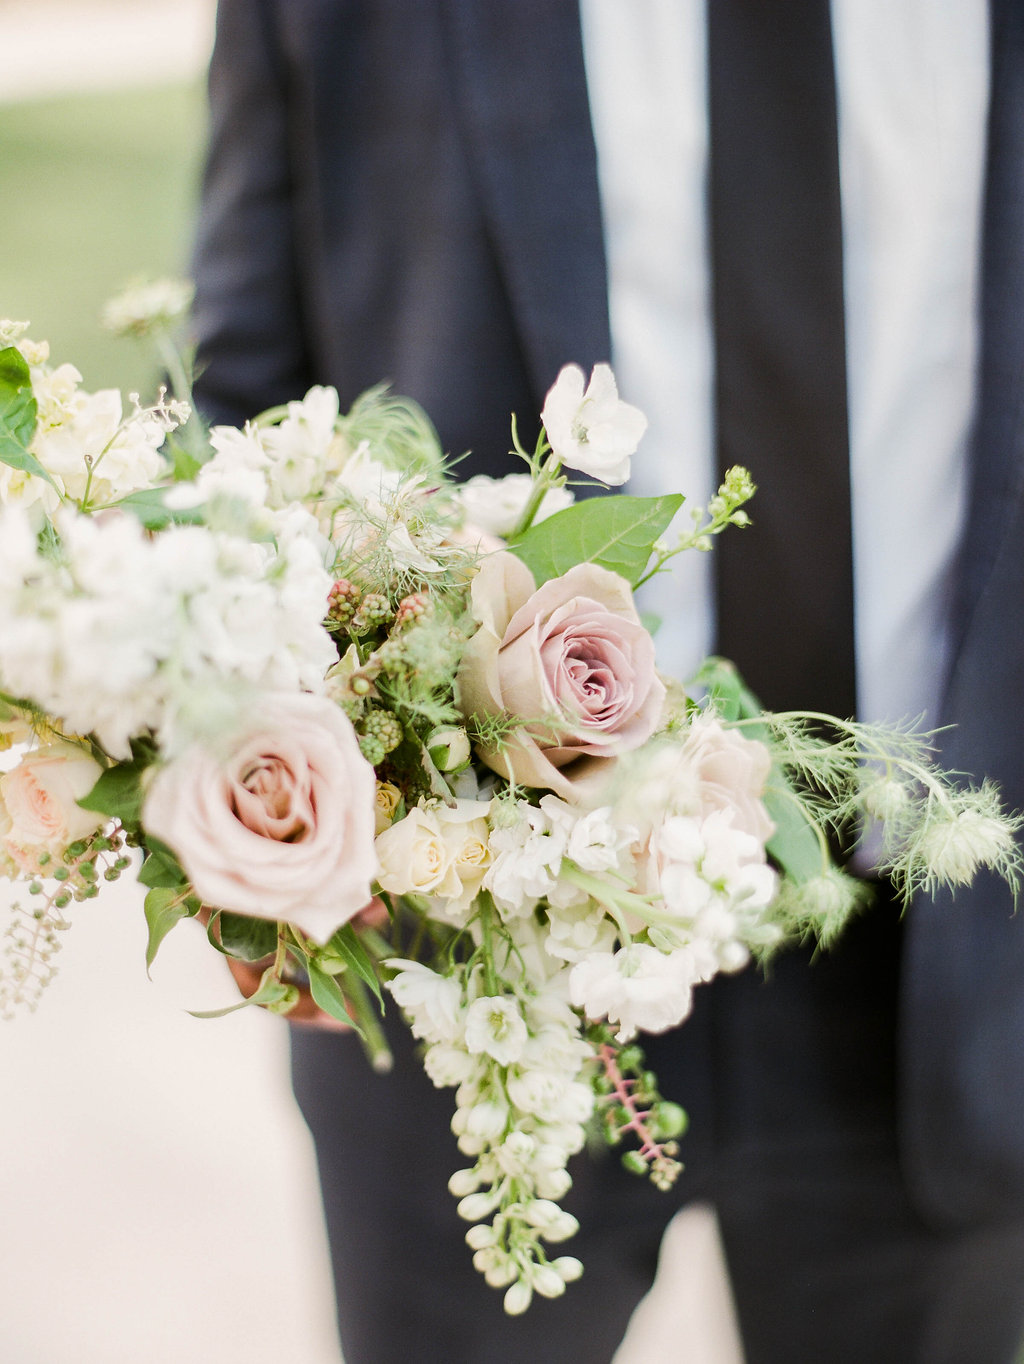 dusty pink rose bouquets - photo by Shannon Duggan Photography http://ruffledblog.com/elegant-chateau-wedding-inspiration-in-st-louis